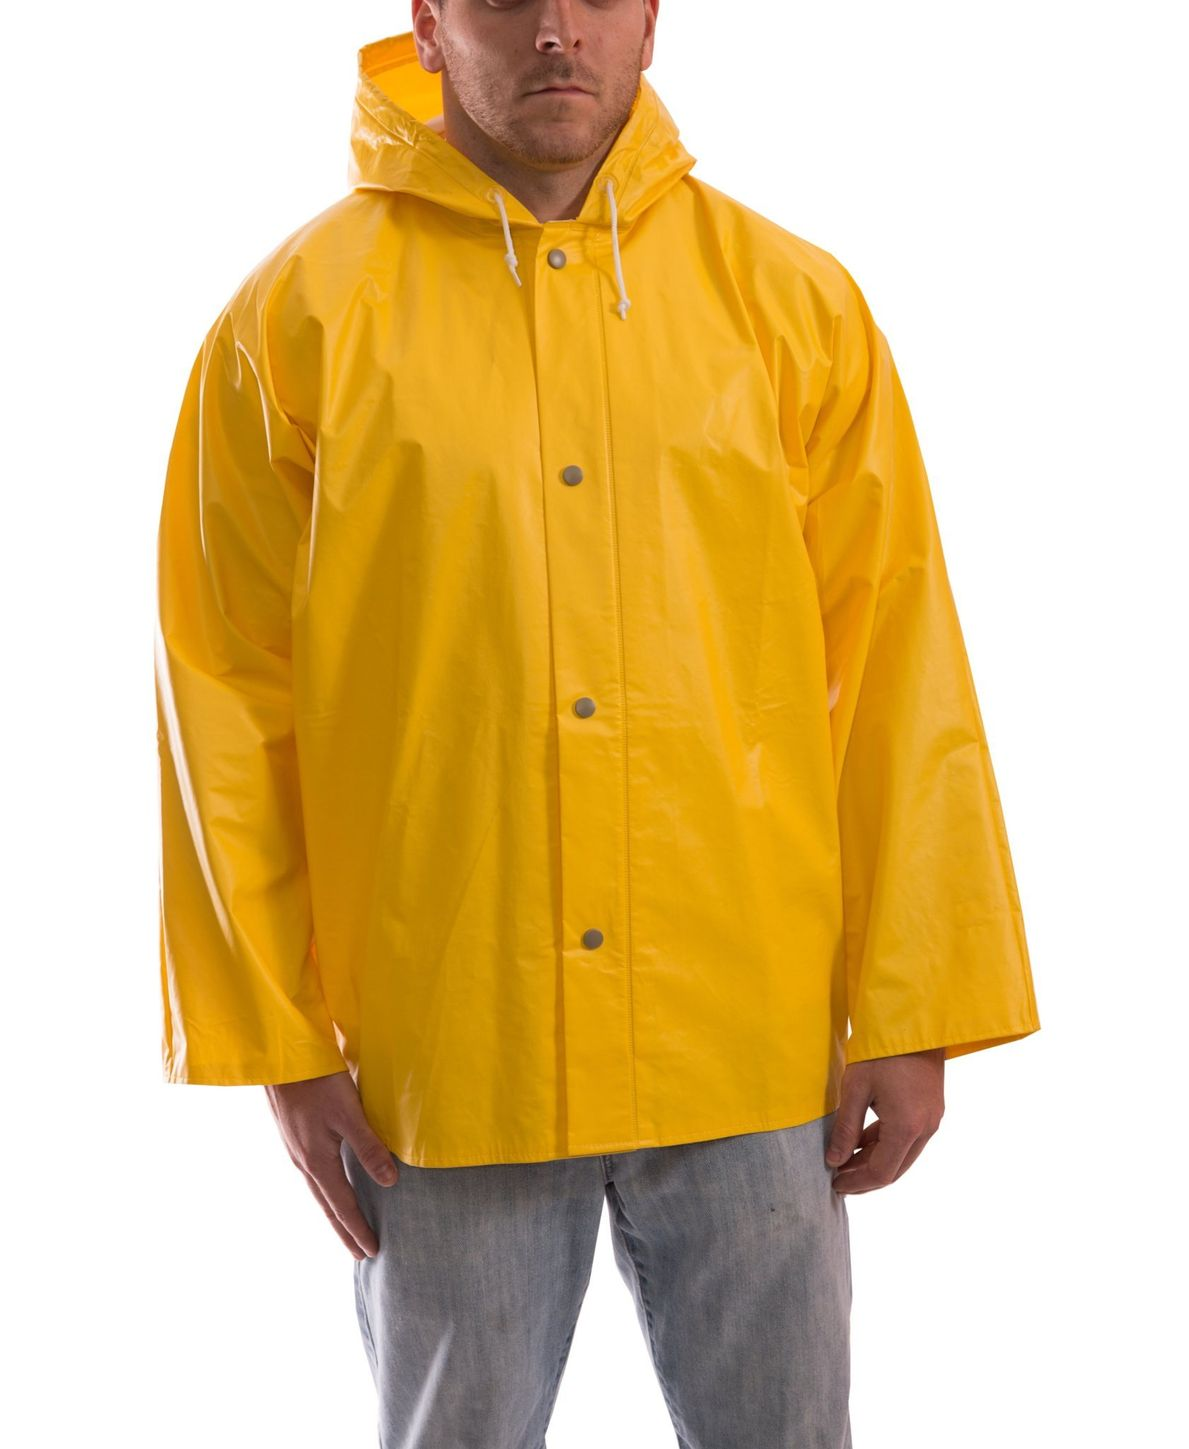 Tingley J32107 PVC Coated Work Jacket - with Attached Hood Front